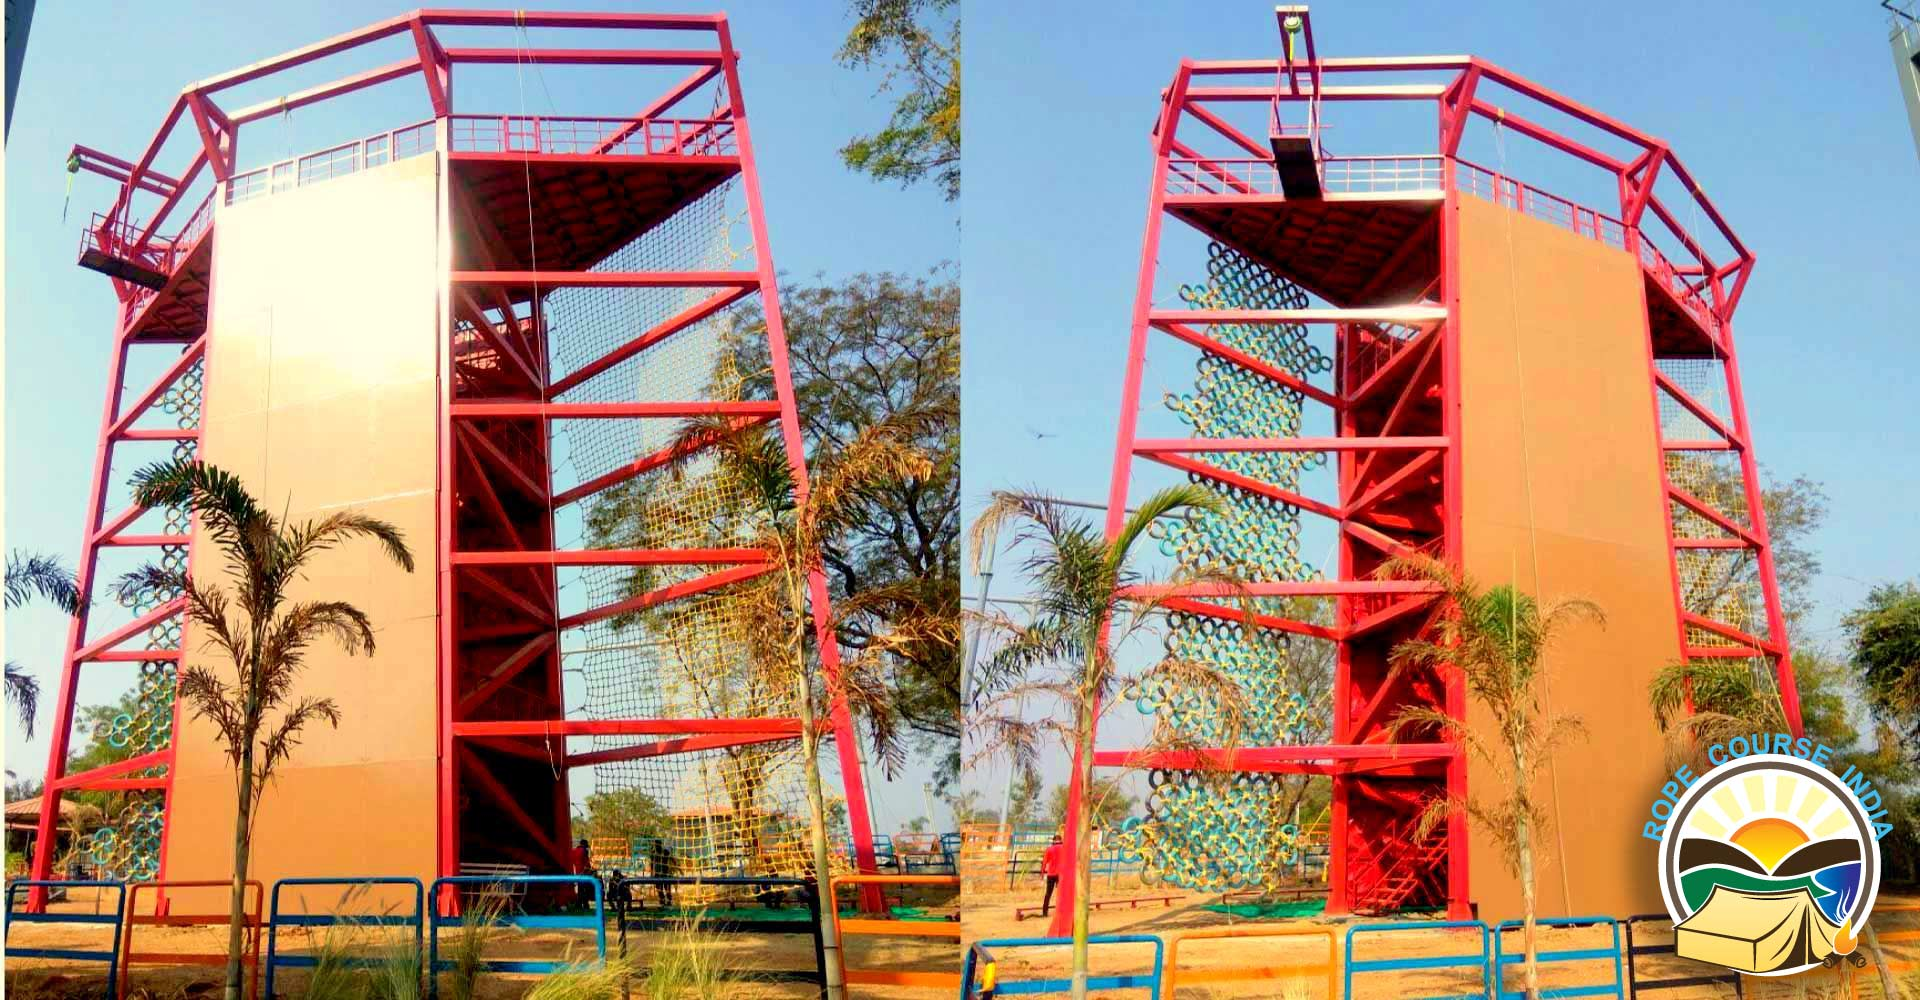 RAPPELLING TOWER IN INDIA